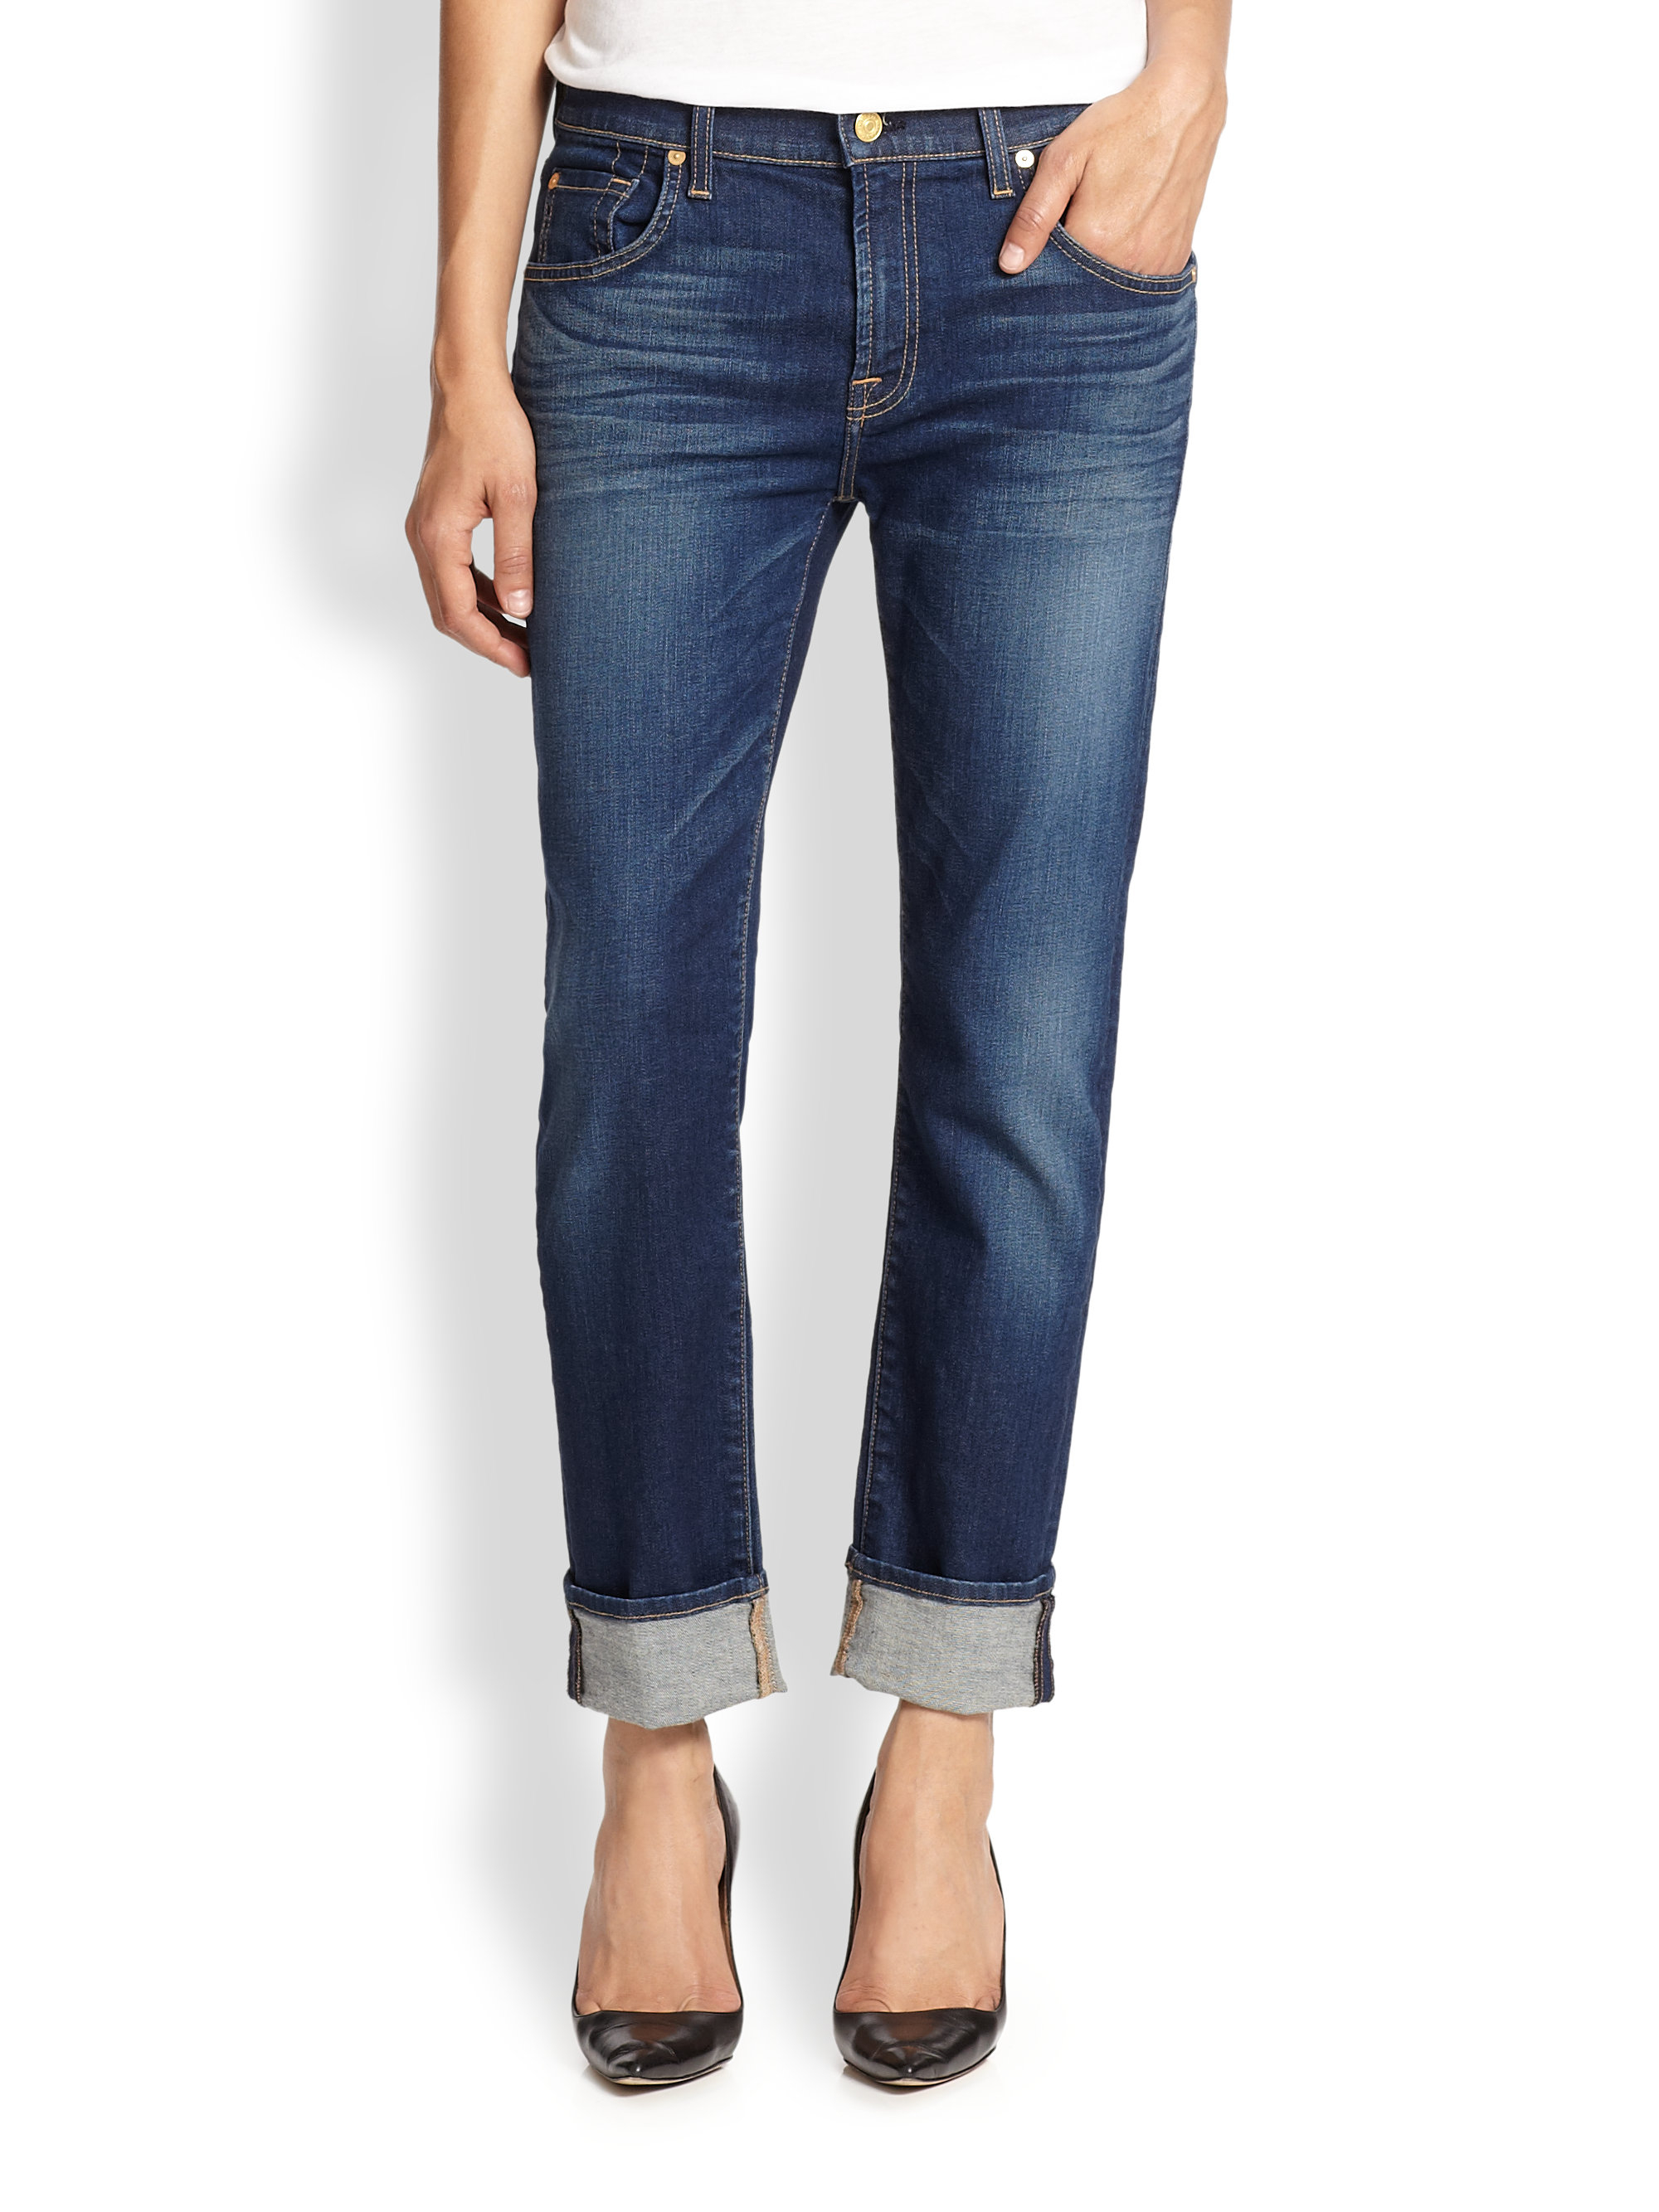 7 for all mankind Relaxed Skinny Boyfriend Jeans in Blue | Lyst